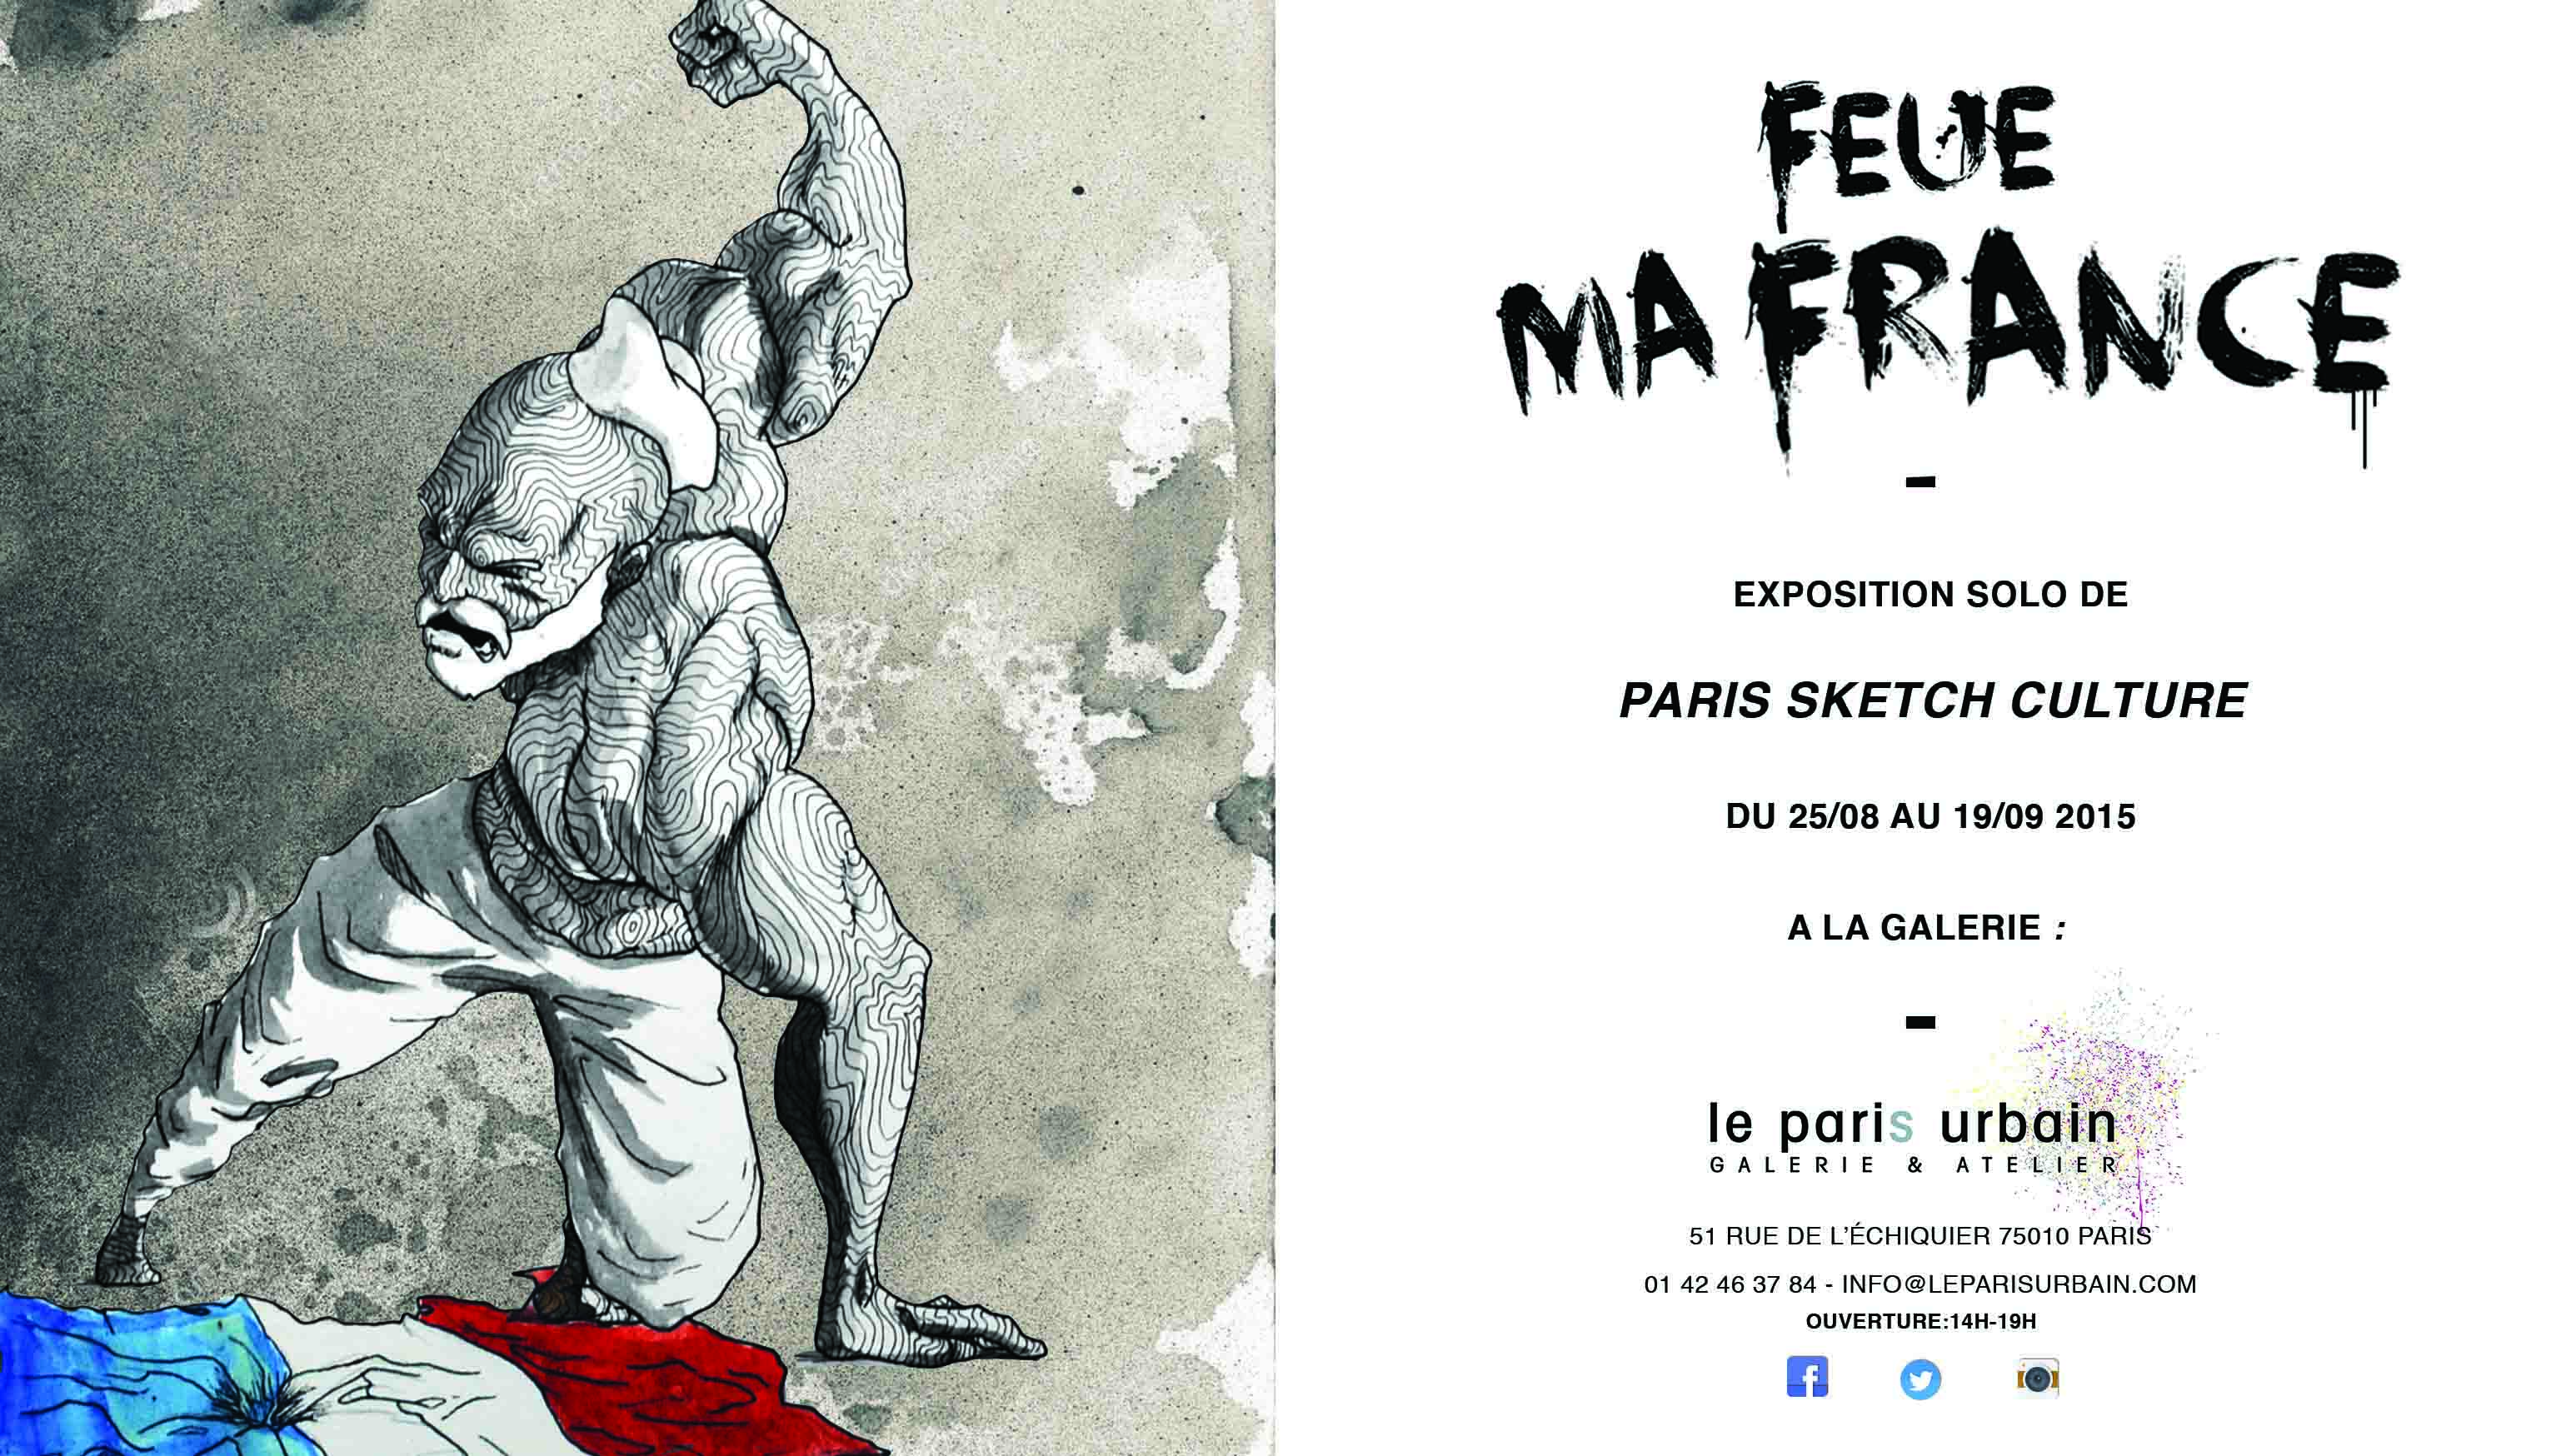 Flyer Feue ma France expo solo by Paris Sketch Culture Raphael Federici dessin original Rendez la nous street art graffiti wall art Galerie Le Paris Urbain